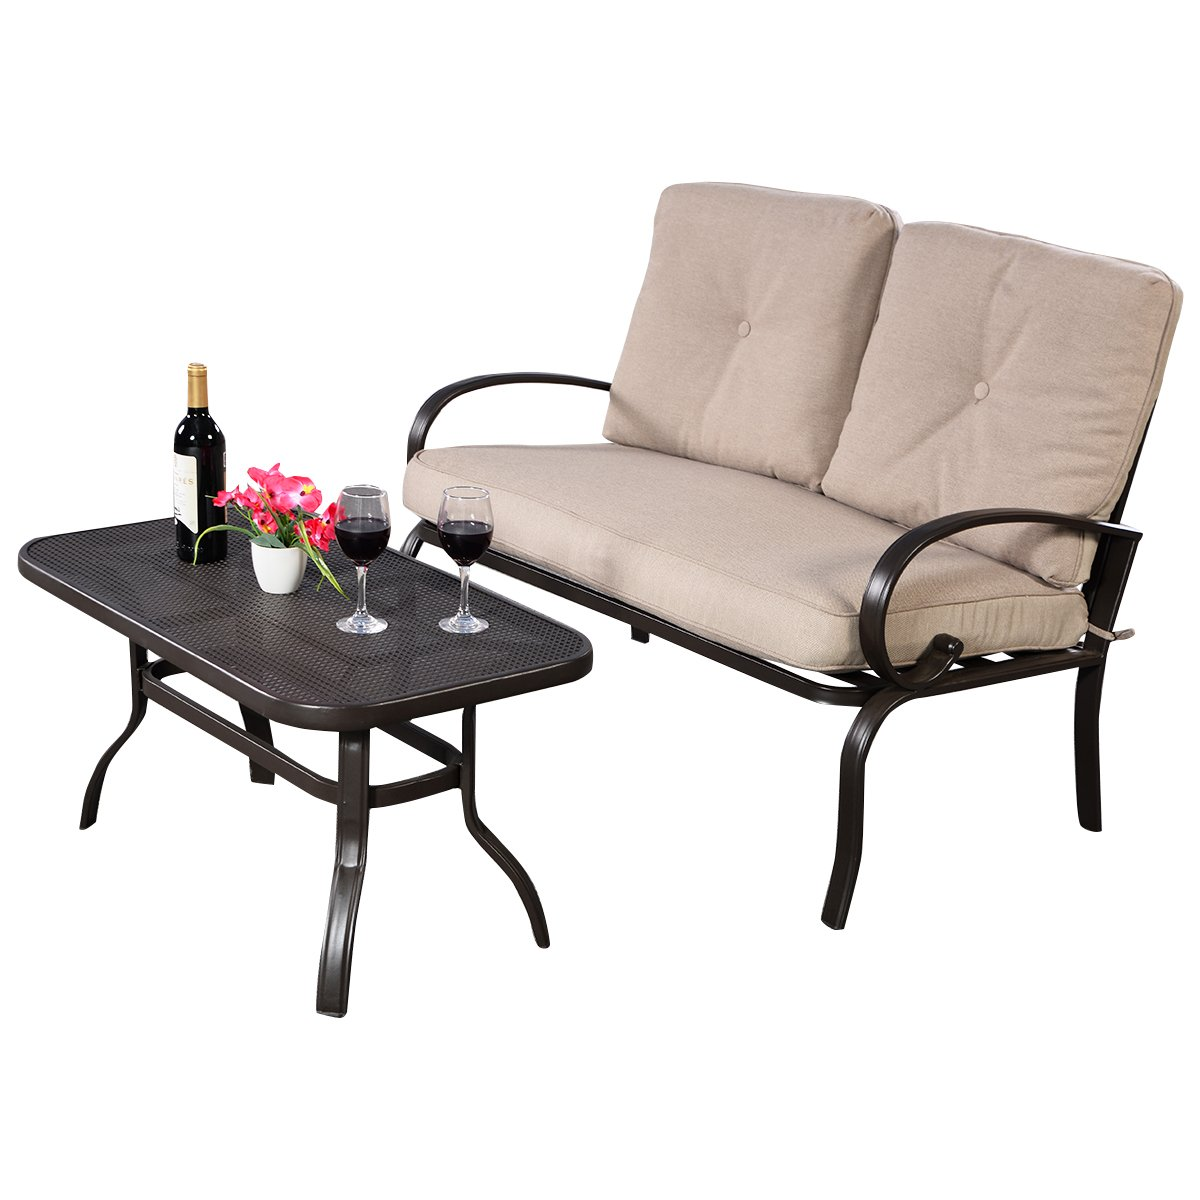 Giantex 2 Pcs Patio Outdoor LoveSeat Coffee Table Set Furniture Bench With Cushion